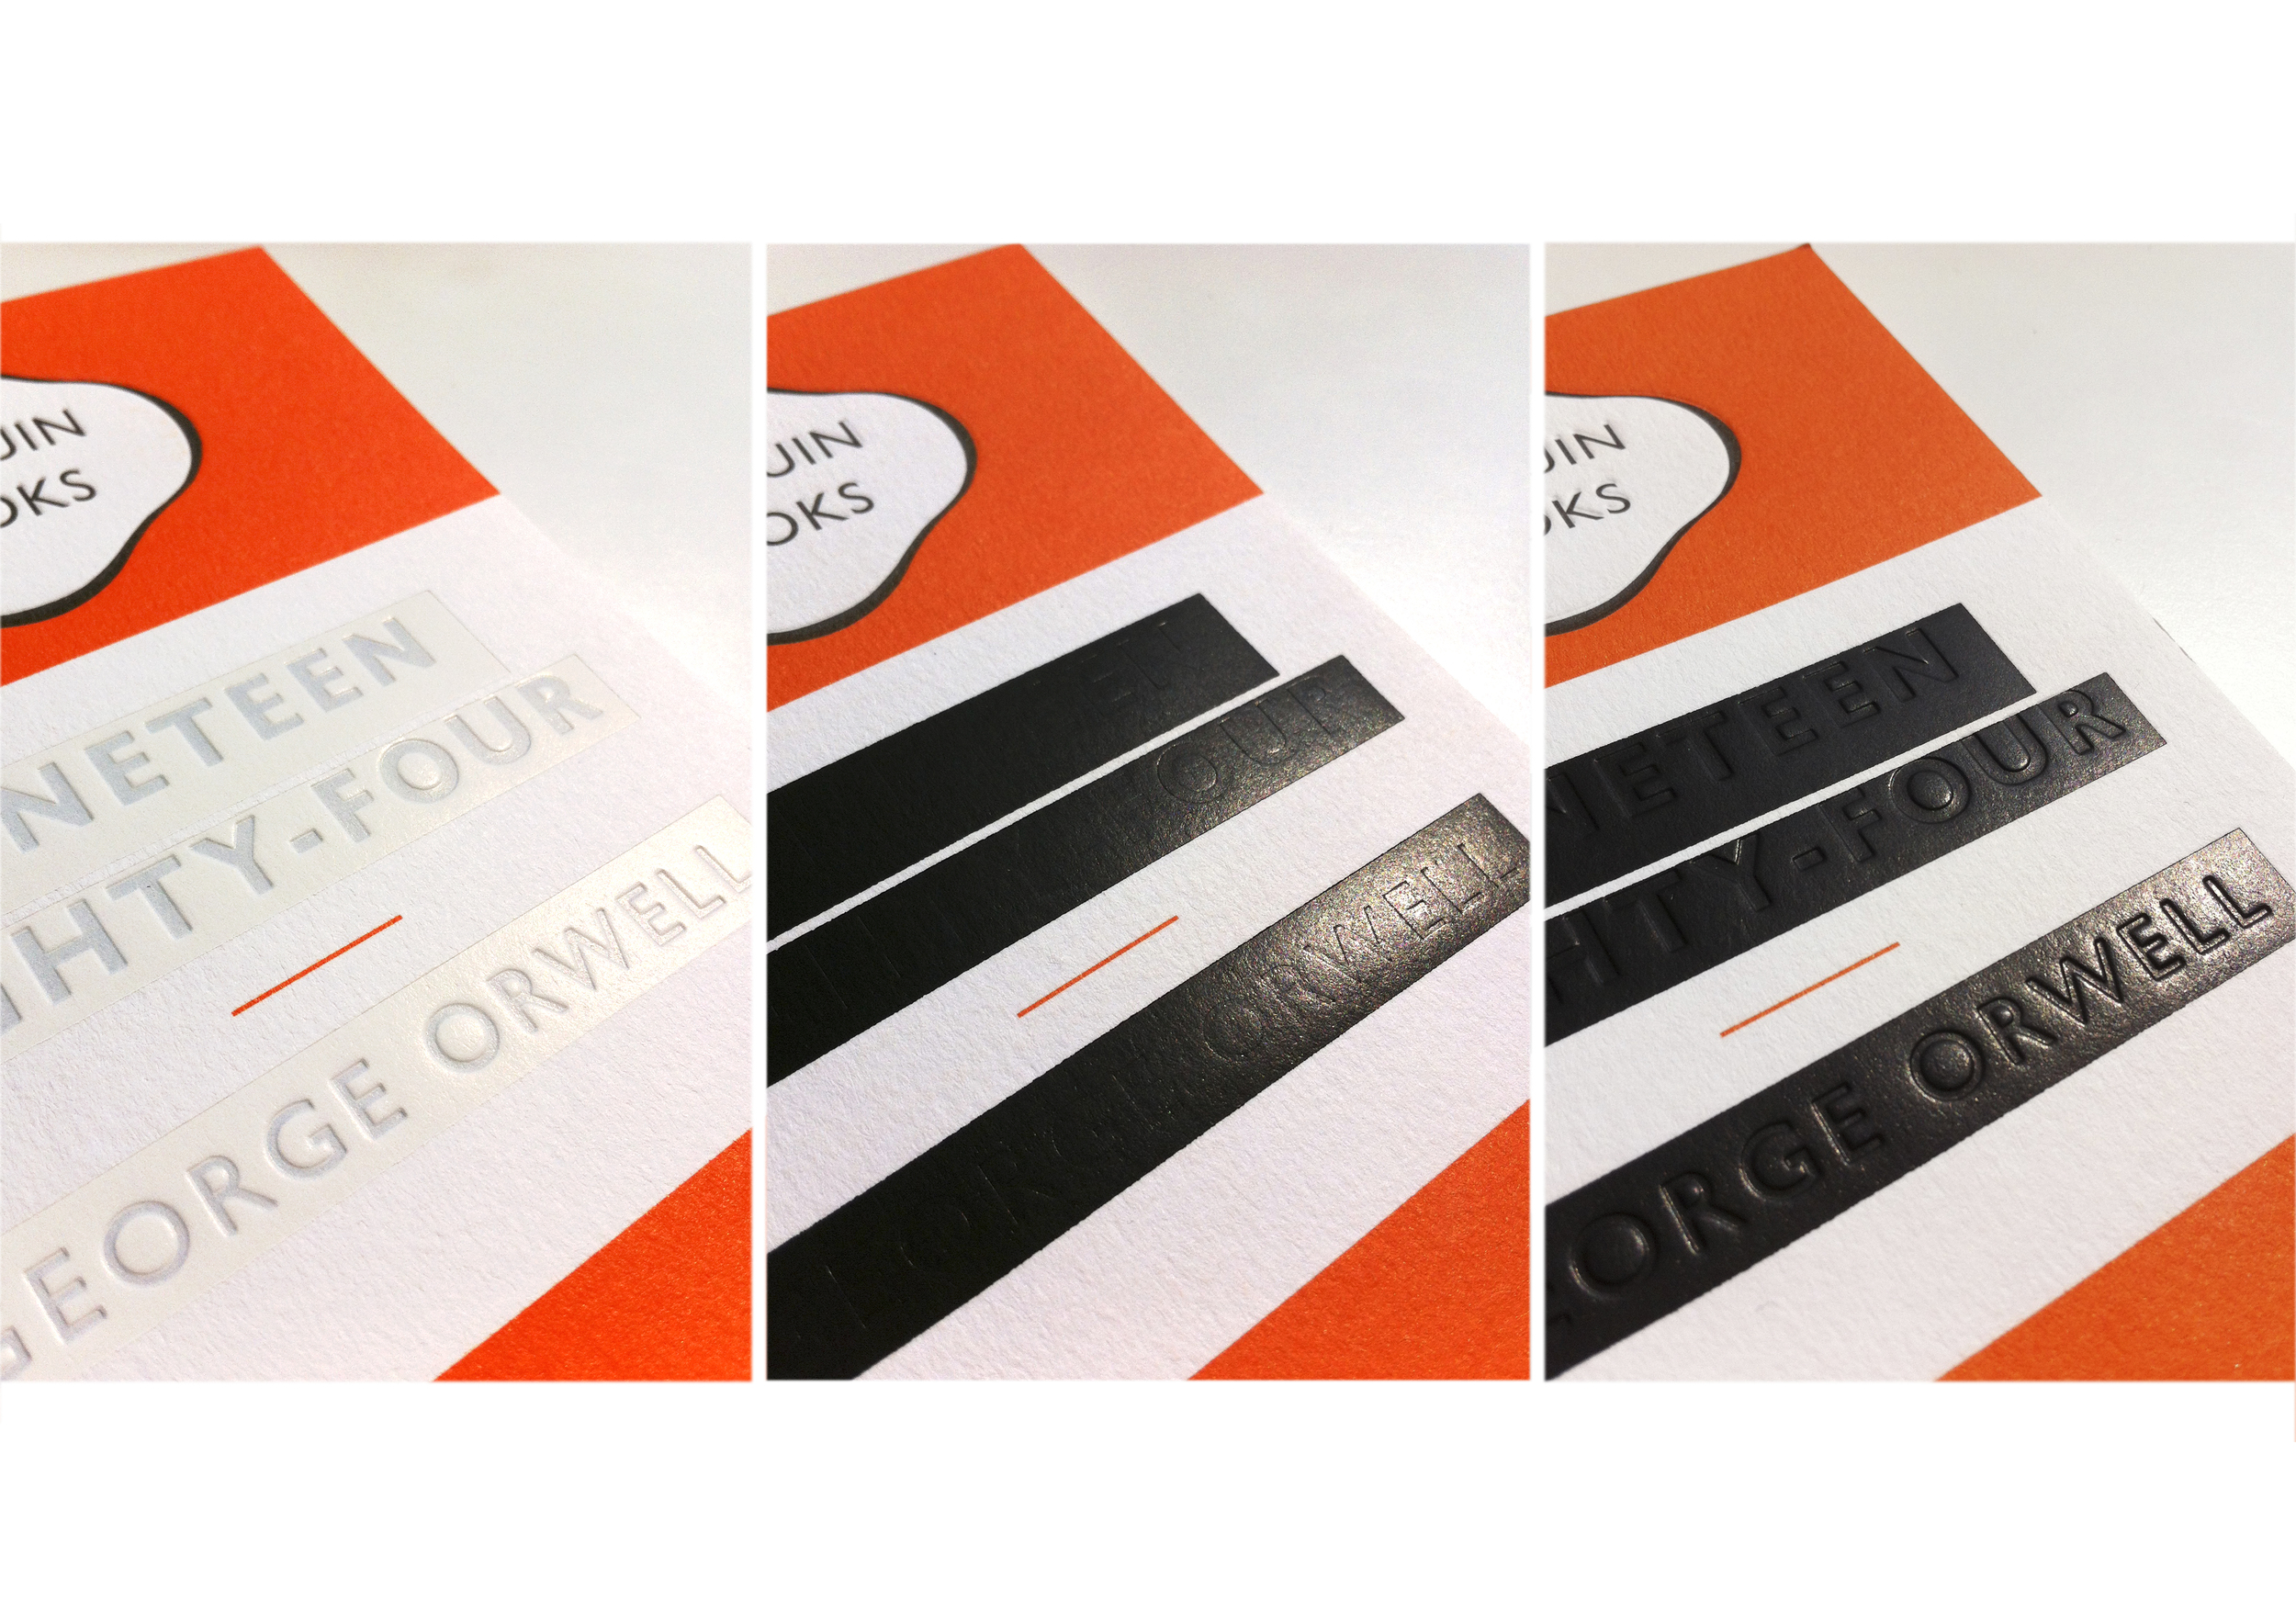 Nineteen Eighty Four (Great Orwell series) Foil & Deboss tests -  Art Direction: Jim Stoddart Design: David Pearson